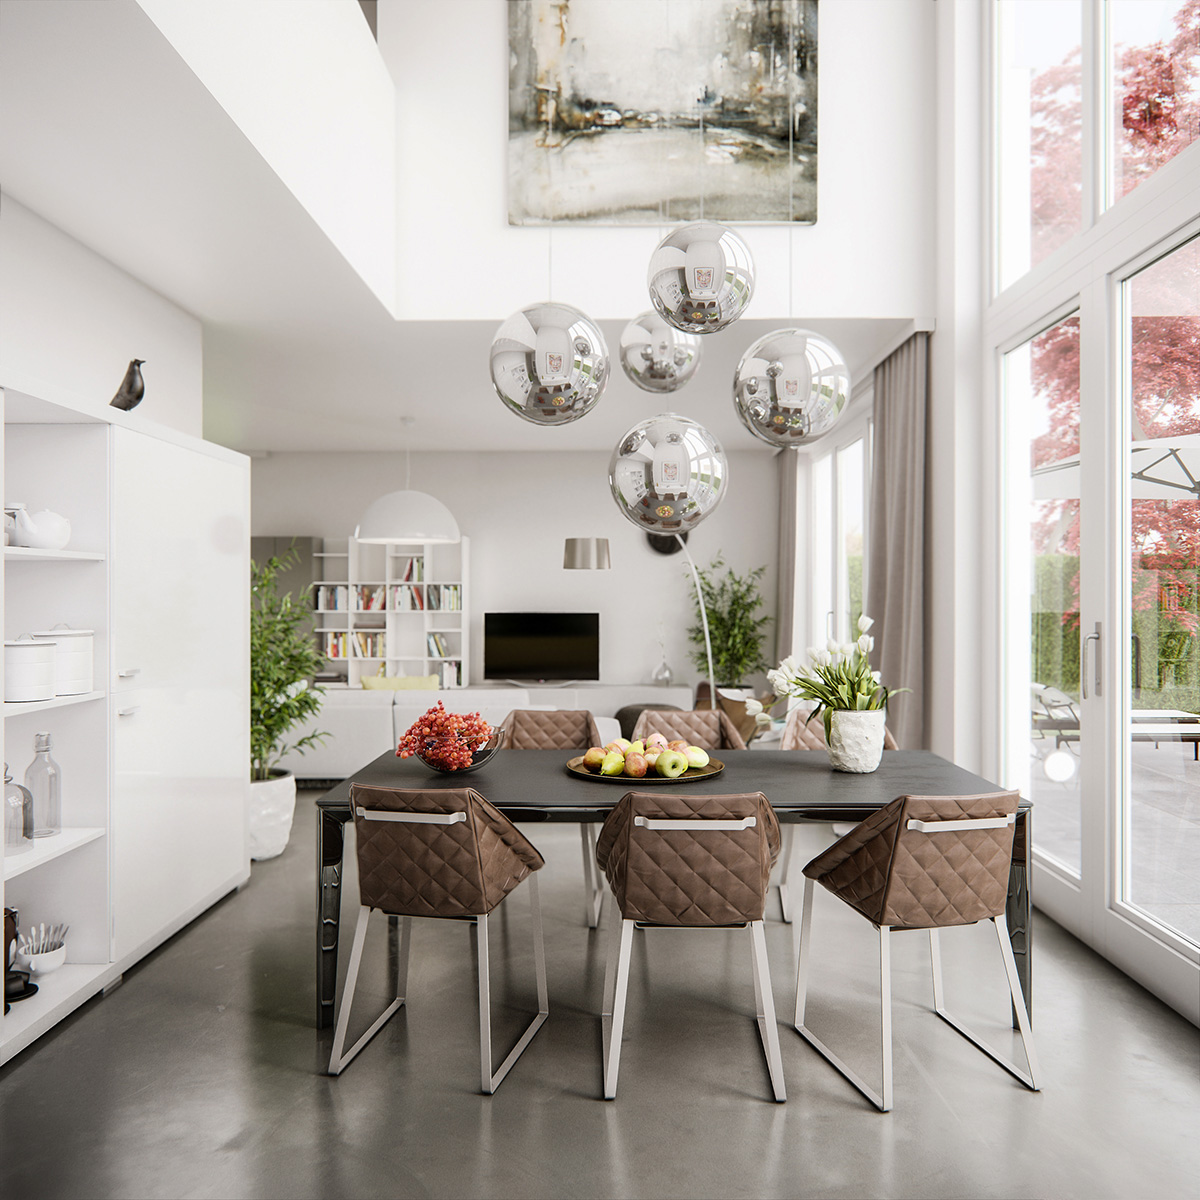 Contemporary dining room with high ceiling